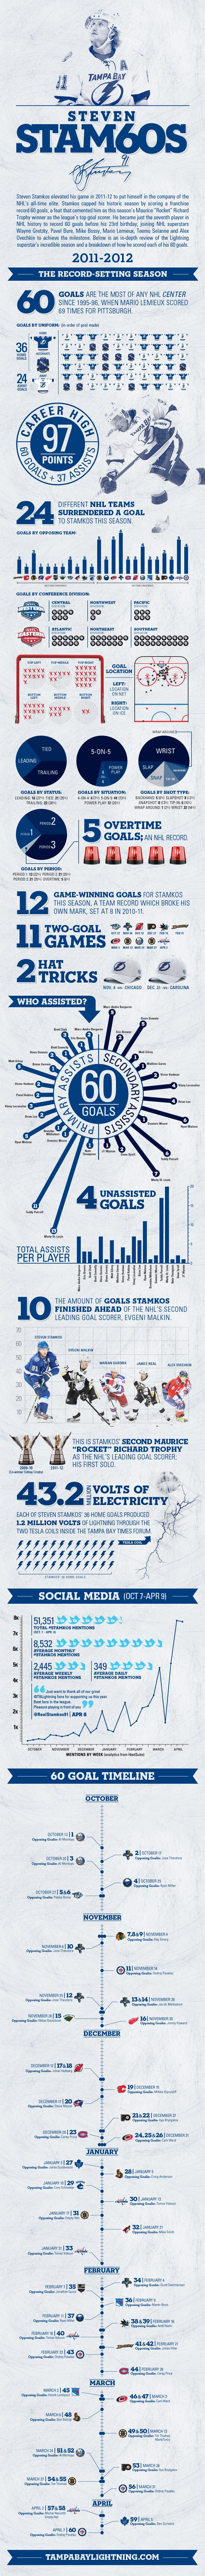 Infographic: Steven Stamkos' magical 60-goal season - NHL on CBC Sports - Hockey news, opinion, scores, stats, standings